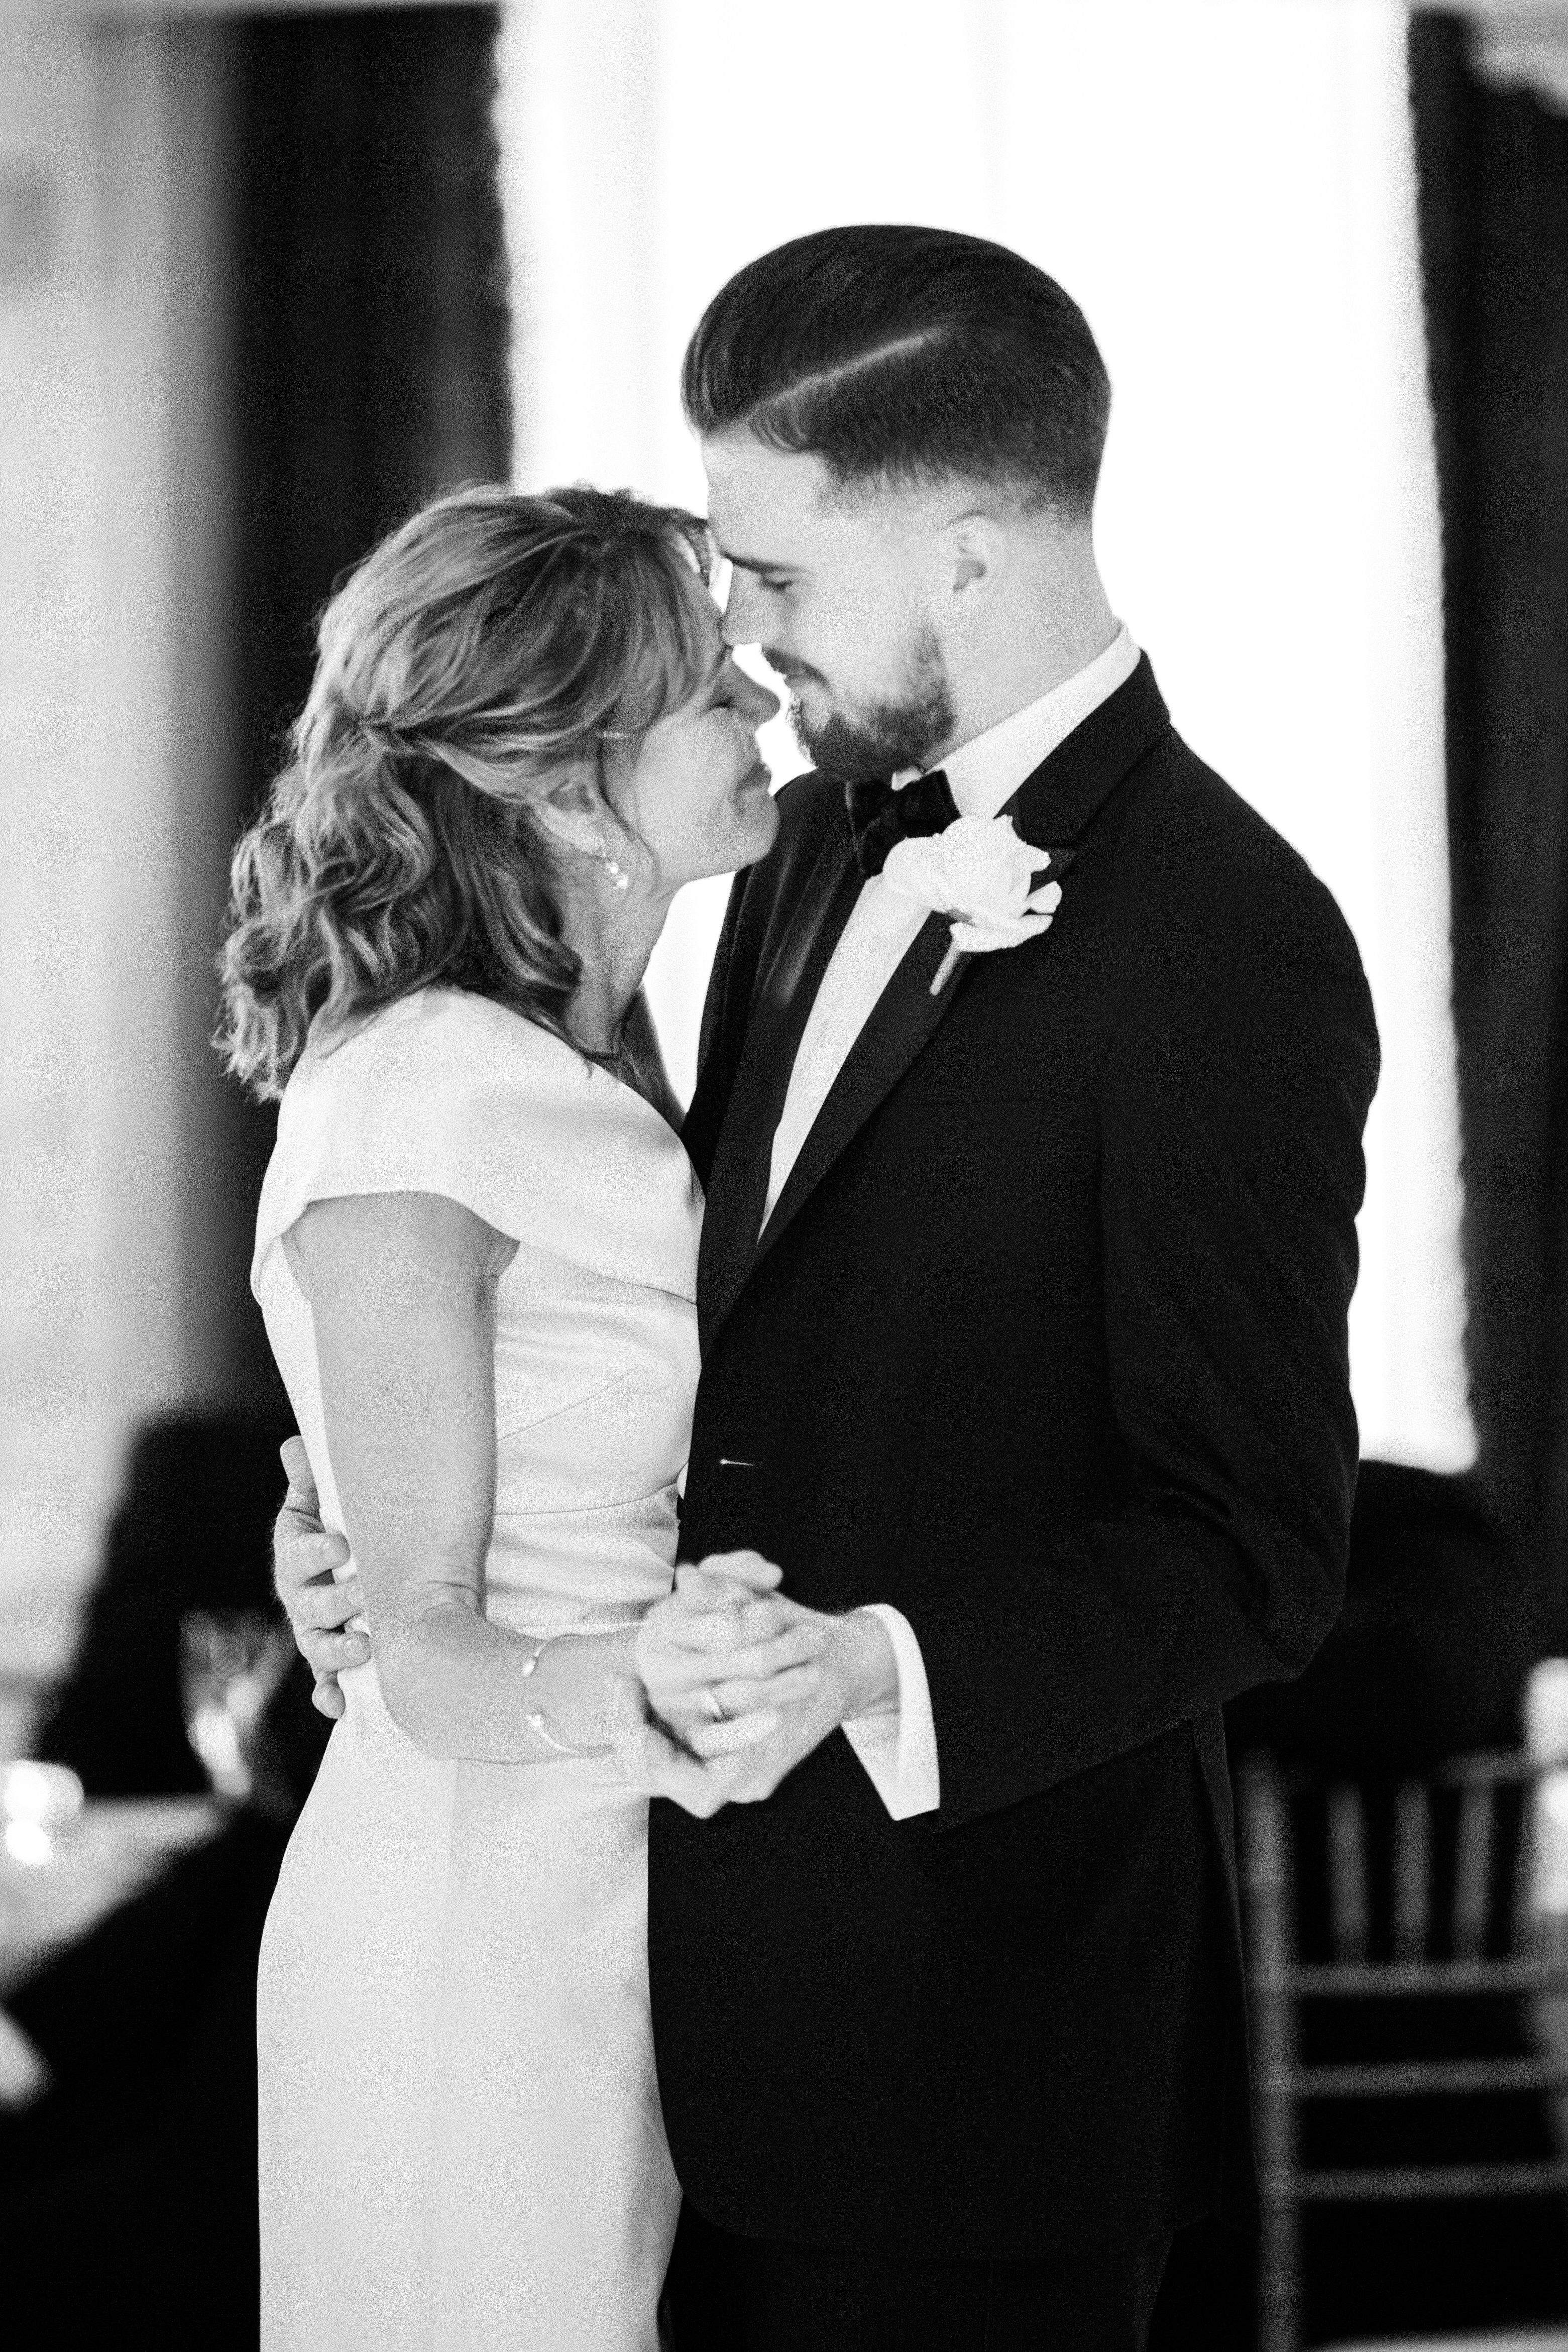 Motherson dance can be so special when the right moments